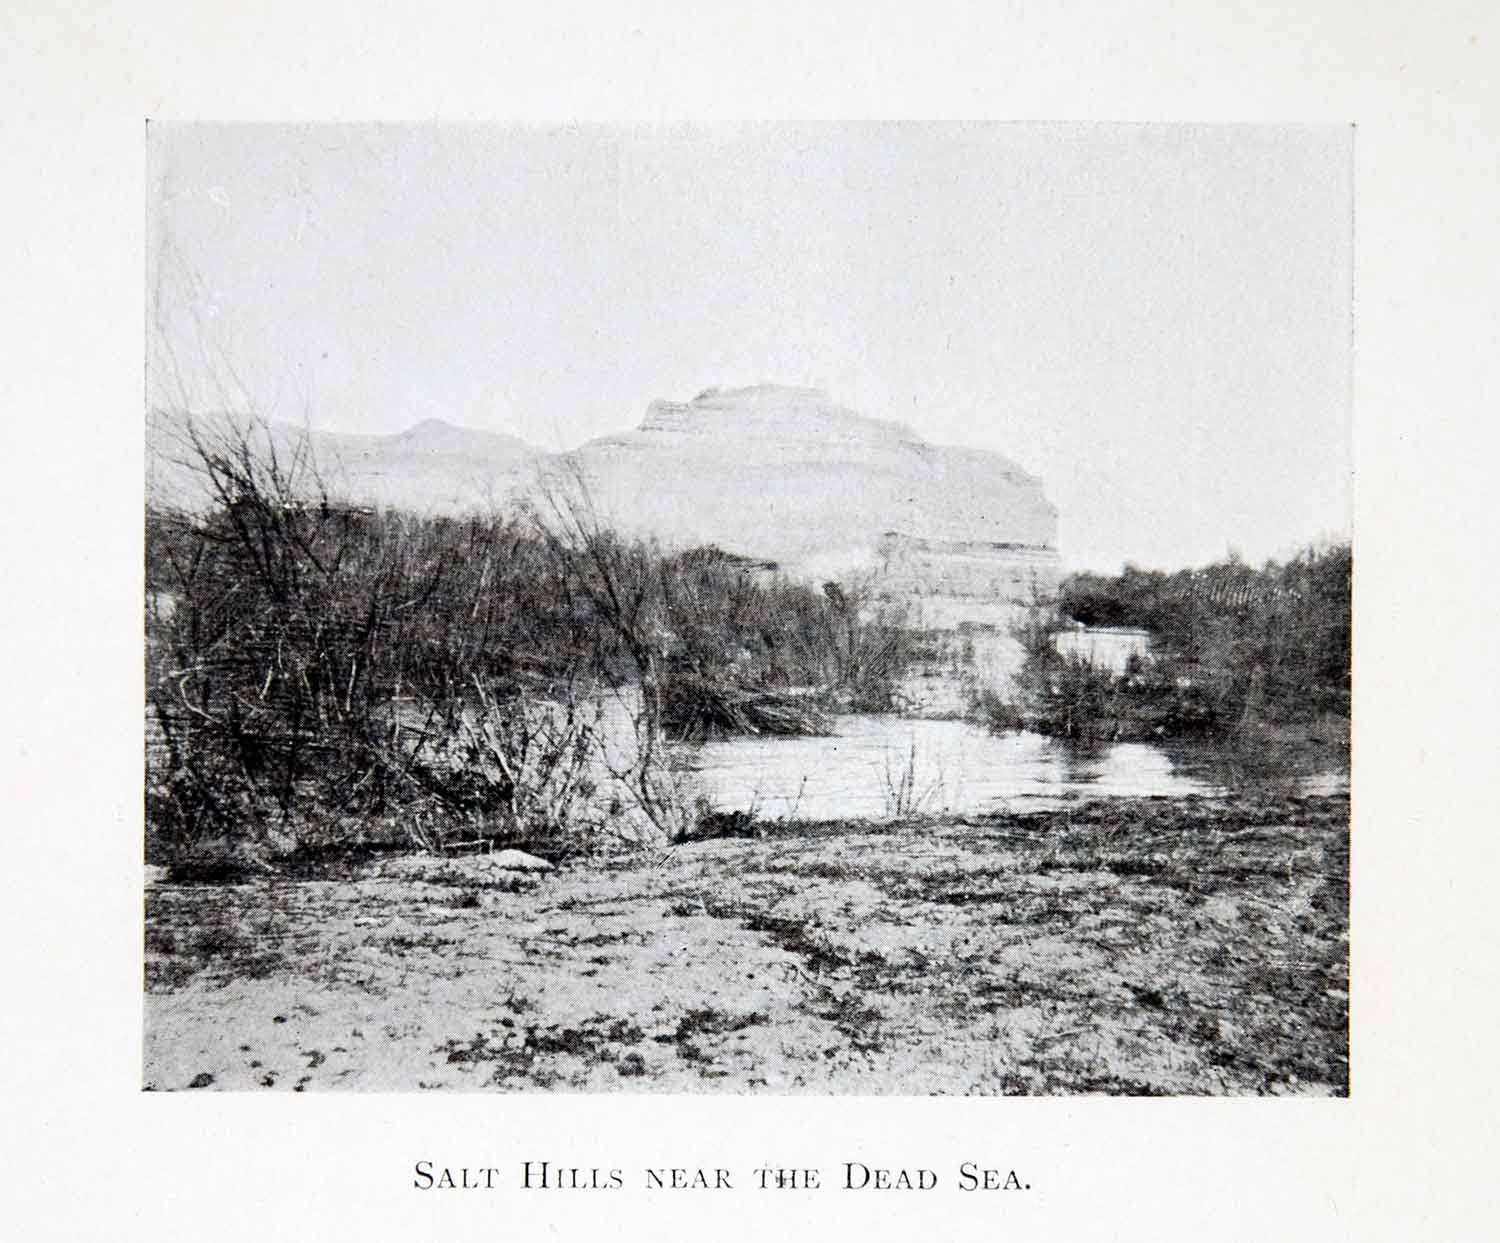 1904 Print Salt Hill Dead Sea Middle East Landscape Desert Historical XGBD5